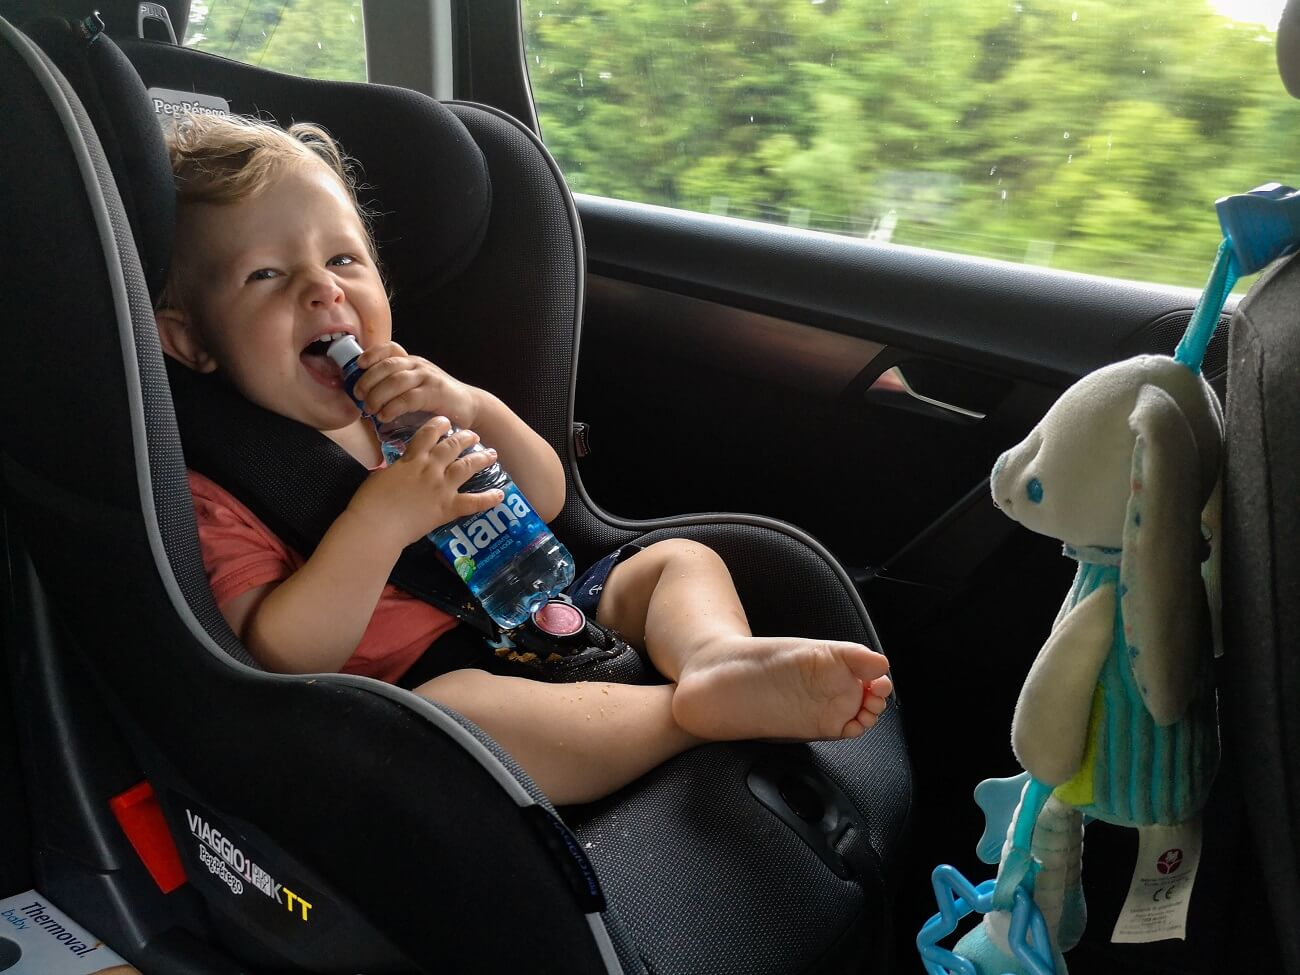 baby car seat, Peg-perego, traveling with kids